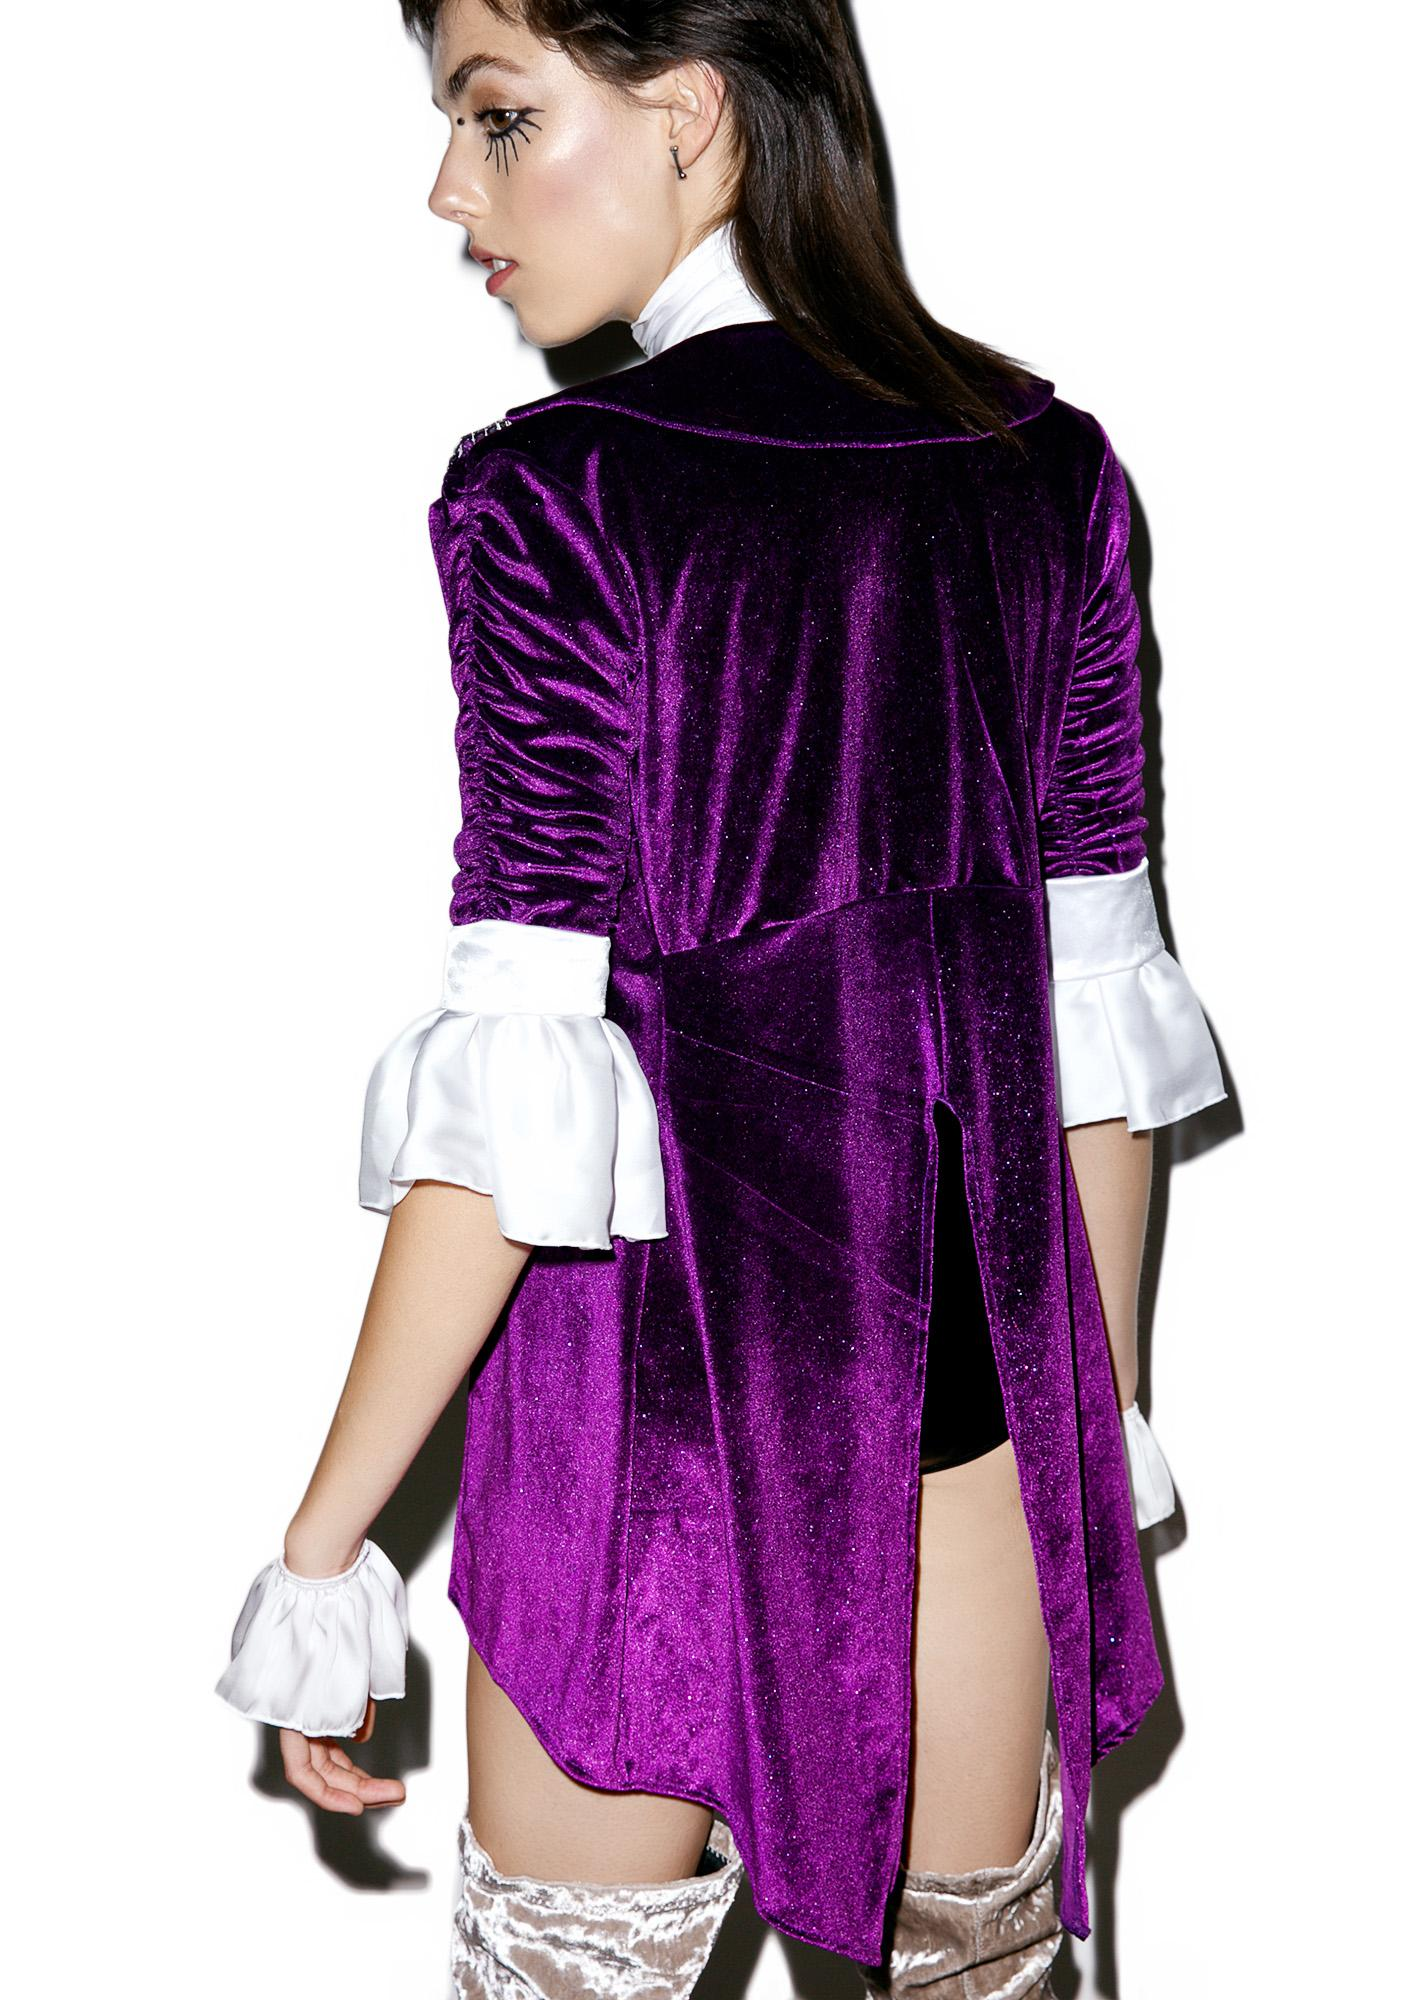 Princess Purple Rayne Costume Set